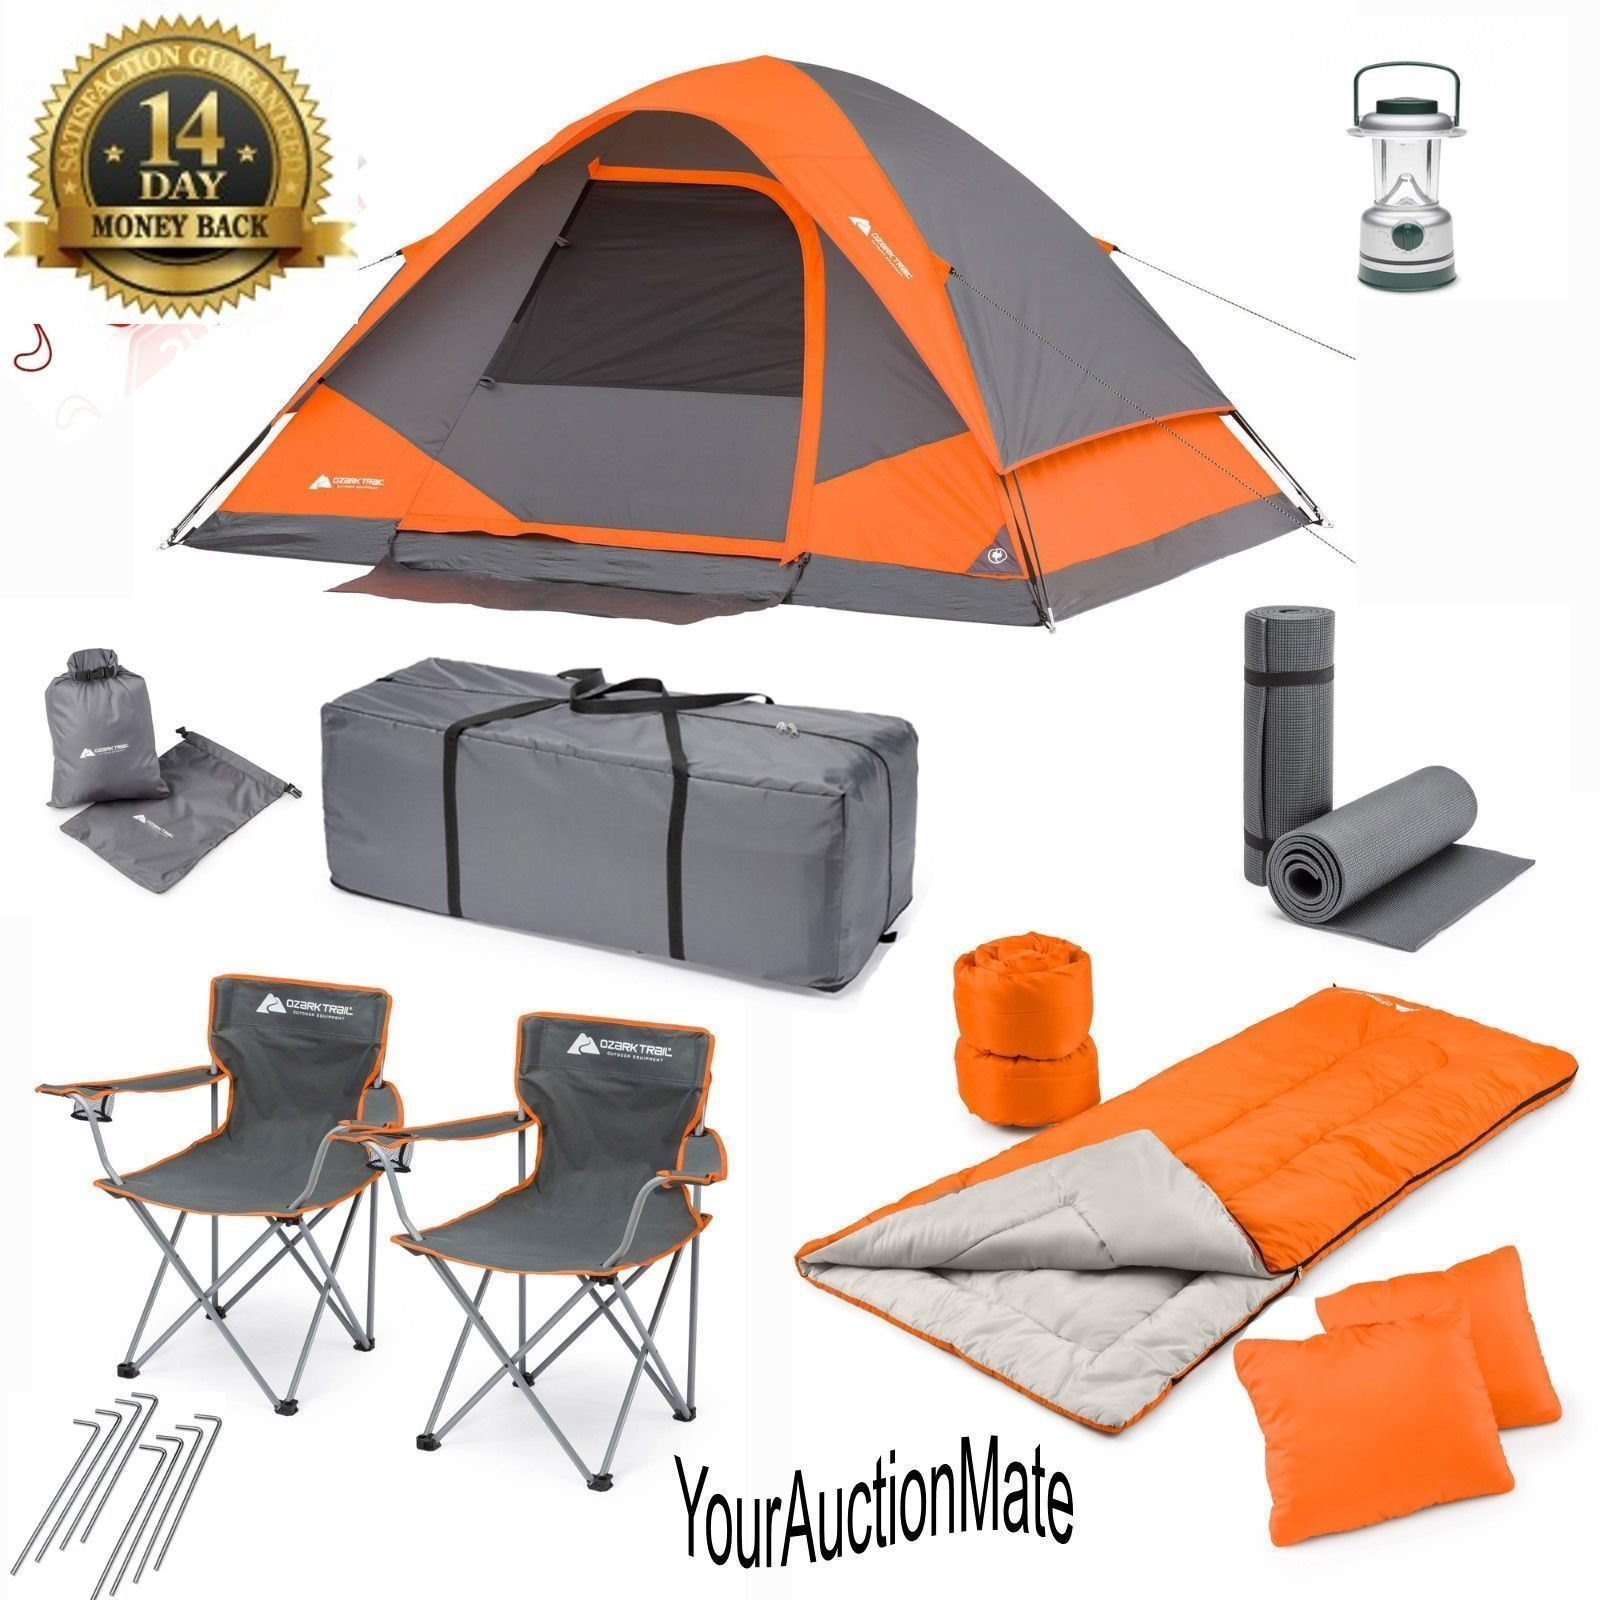 Camping Tent Combo Set 22 Piece 2 Sleeping Bags 2 Pillows 2 Chairs ...